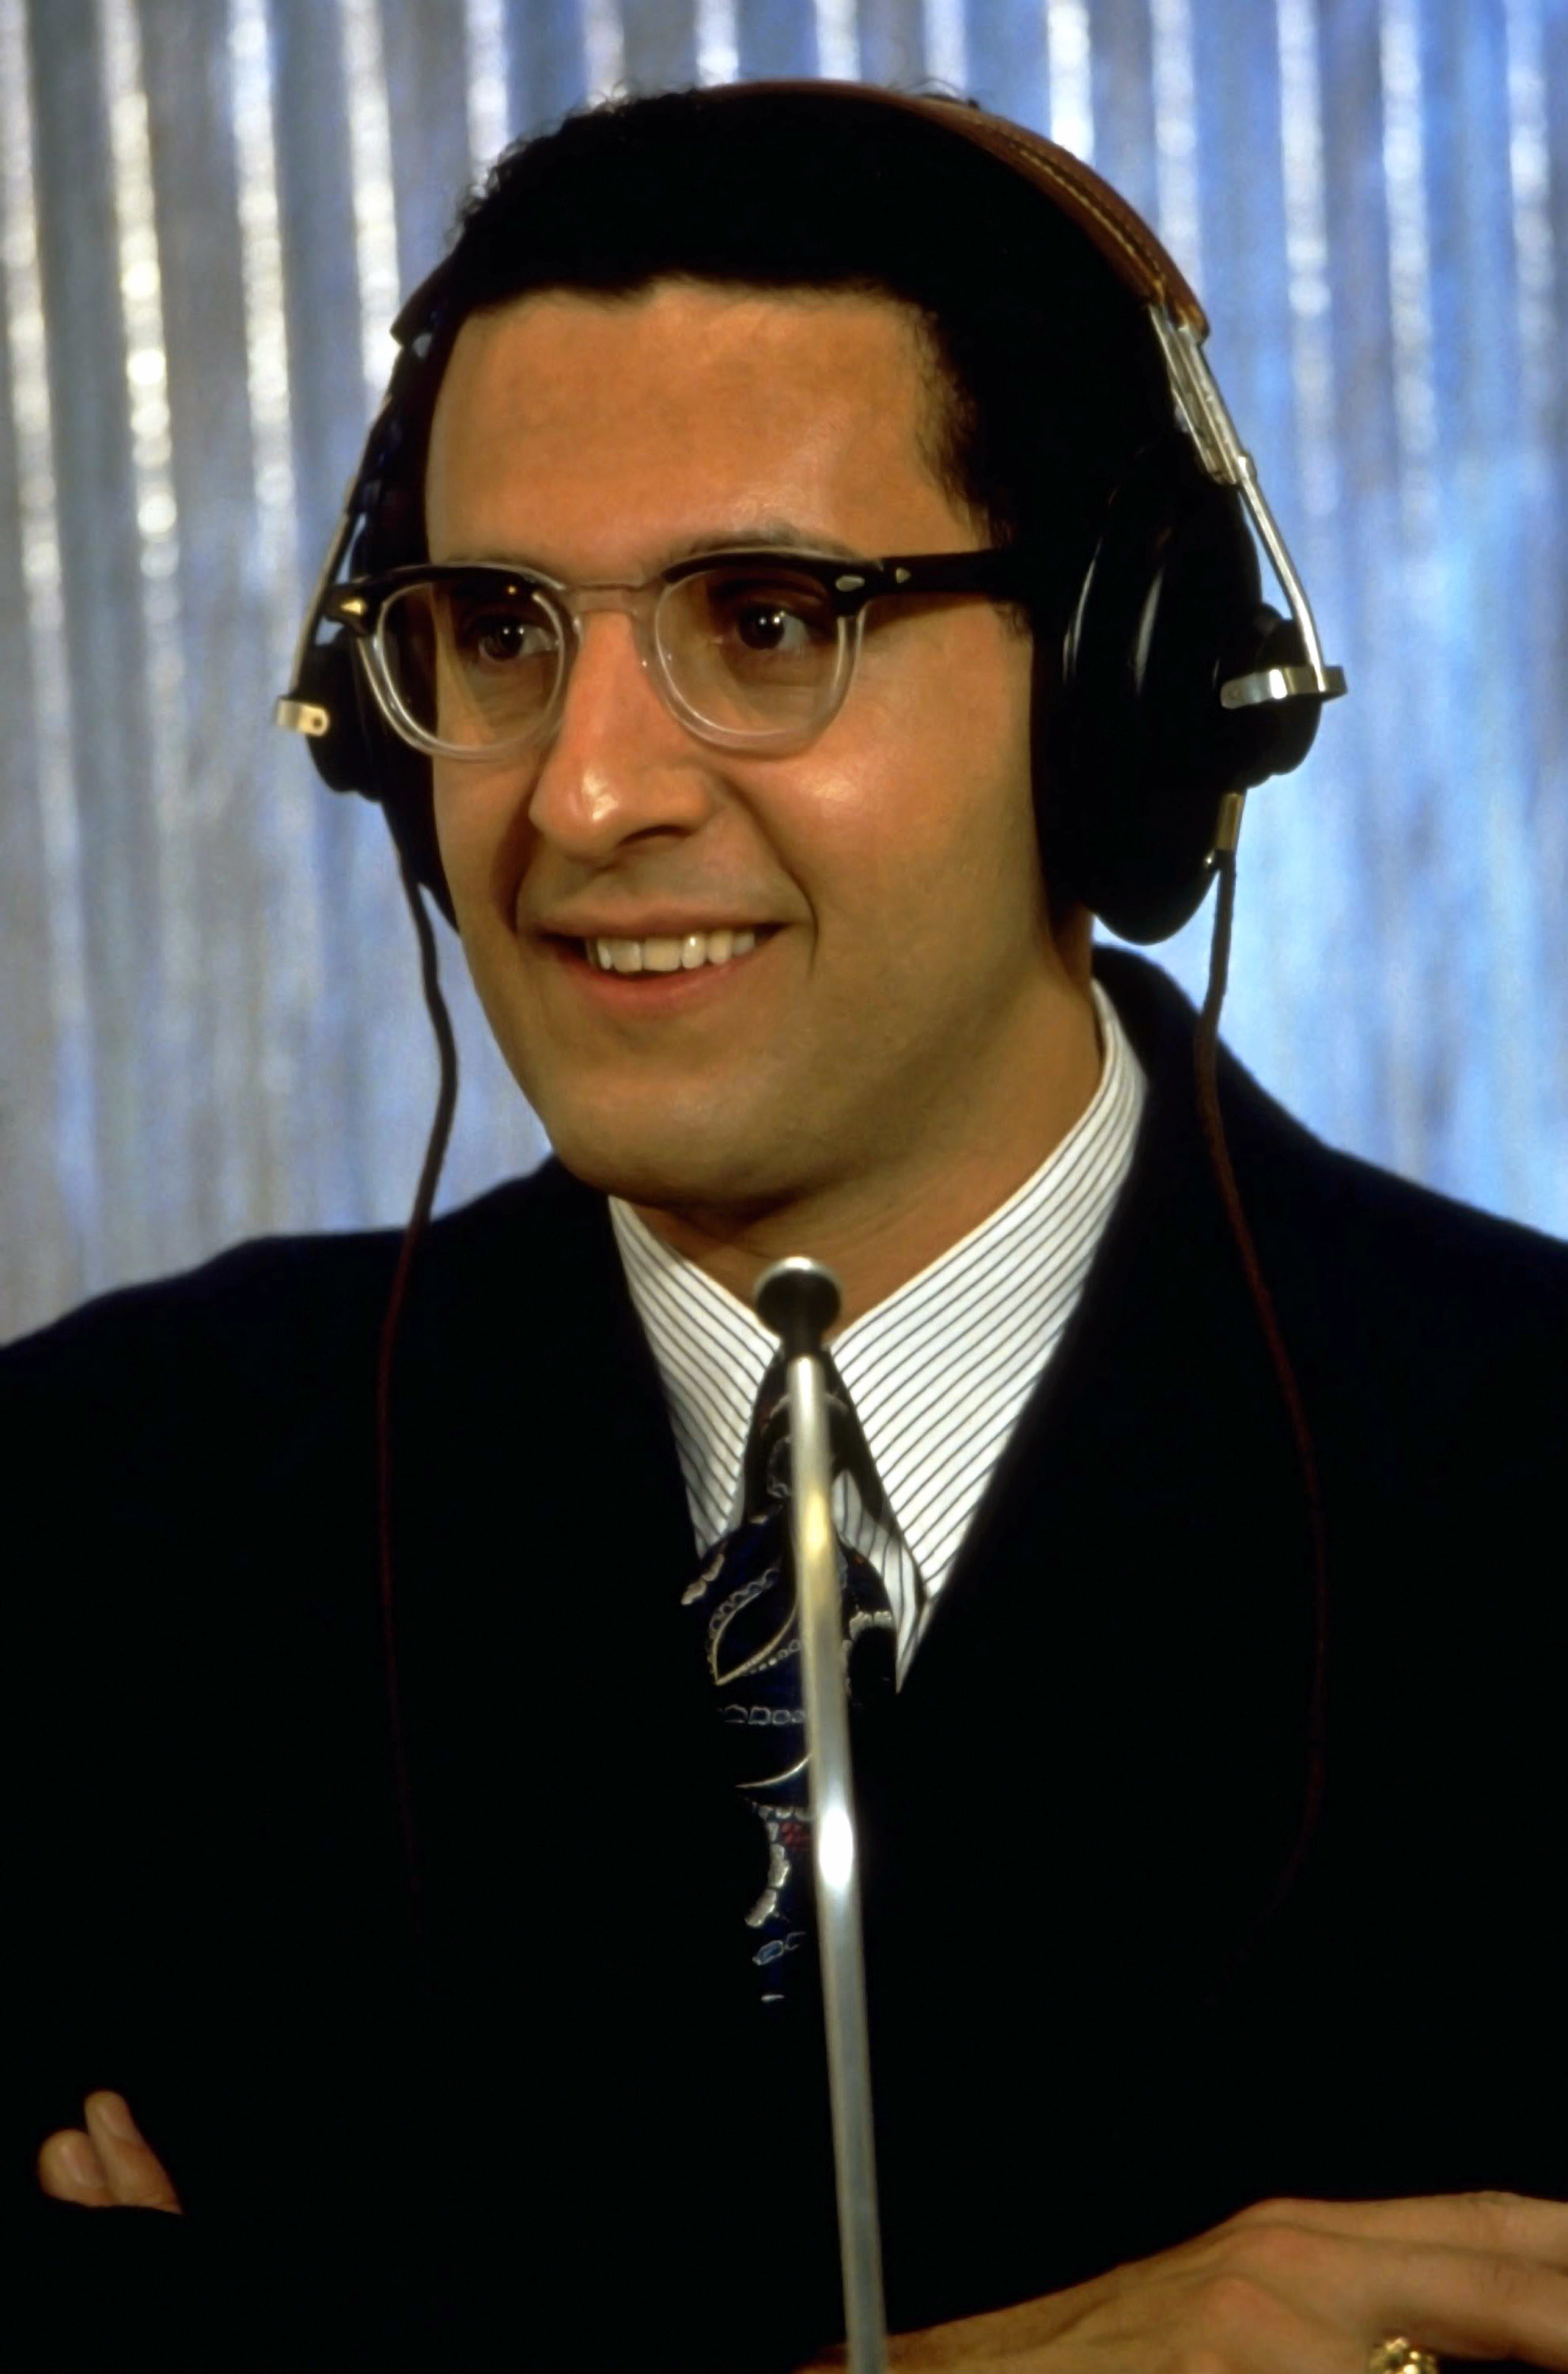 Turturro wearing a suit and headphones a contestant in the quiz show